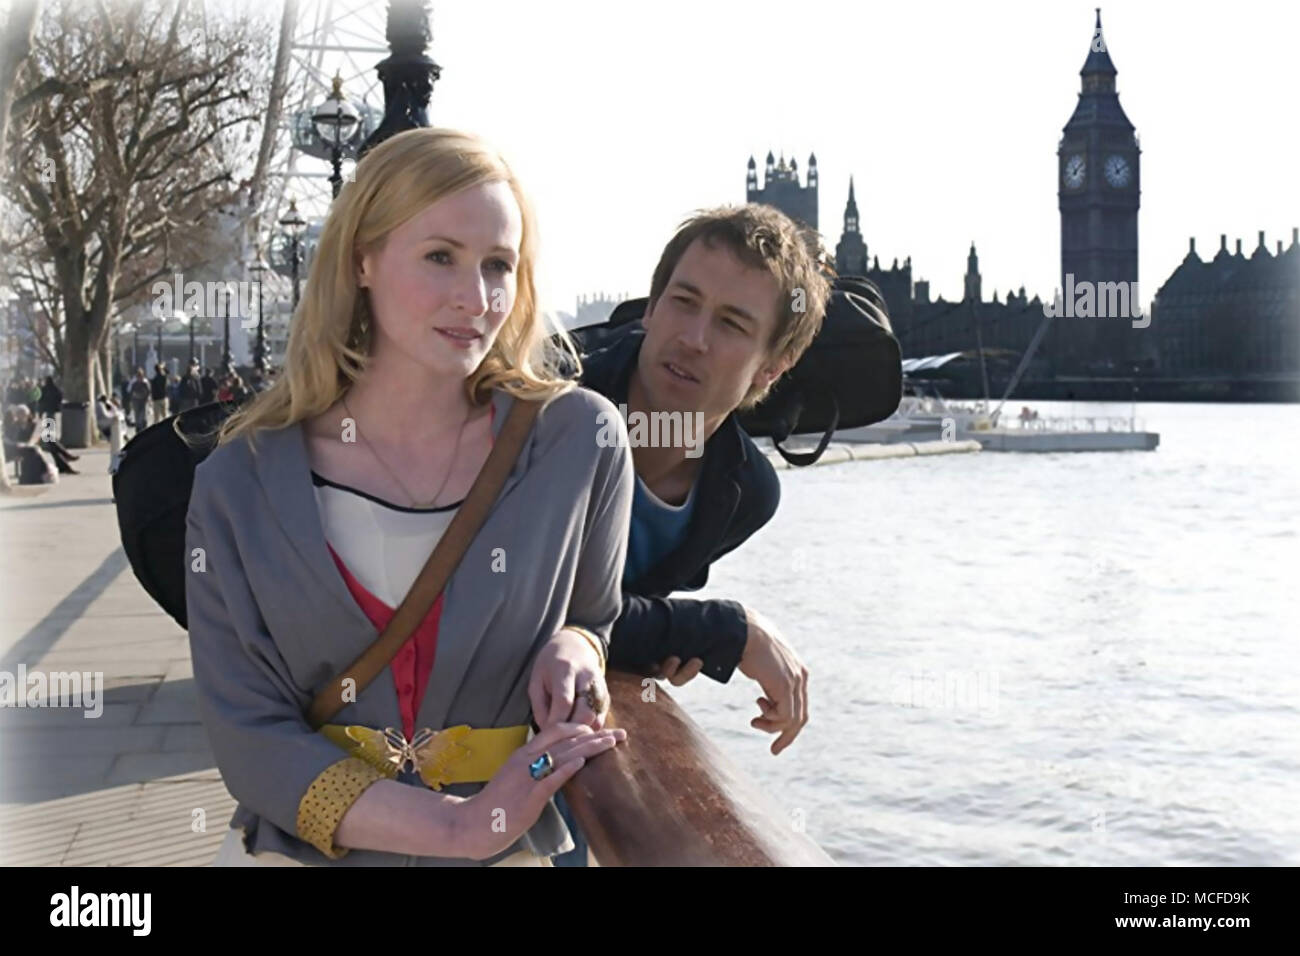 FORGET ME NOT 2010 Quicksilver Films production with Genevieve O'Reilly and Tobias Menzies - Stock Image